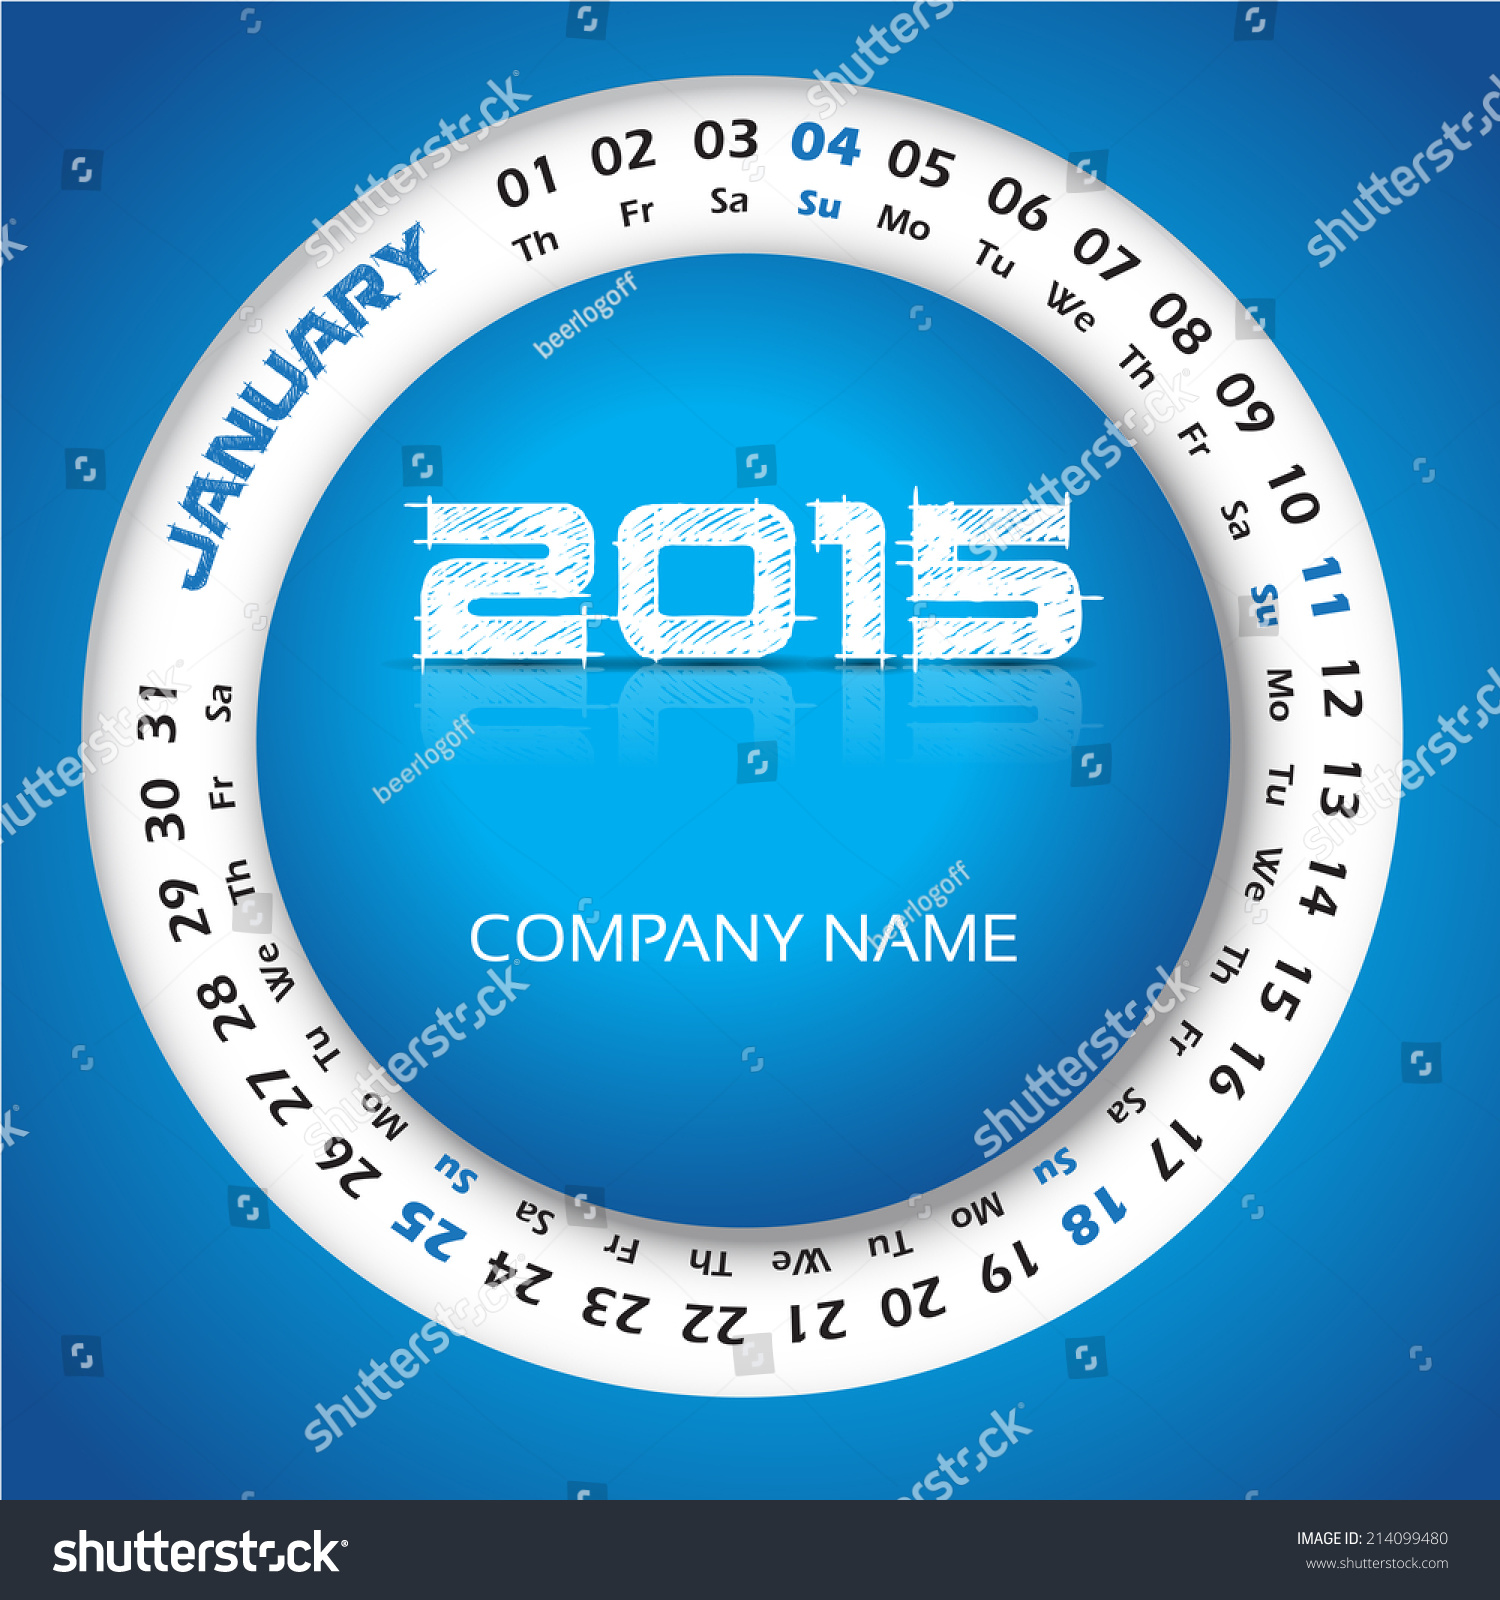 2015 year circular calendar business wall stock vector